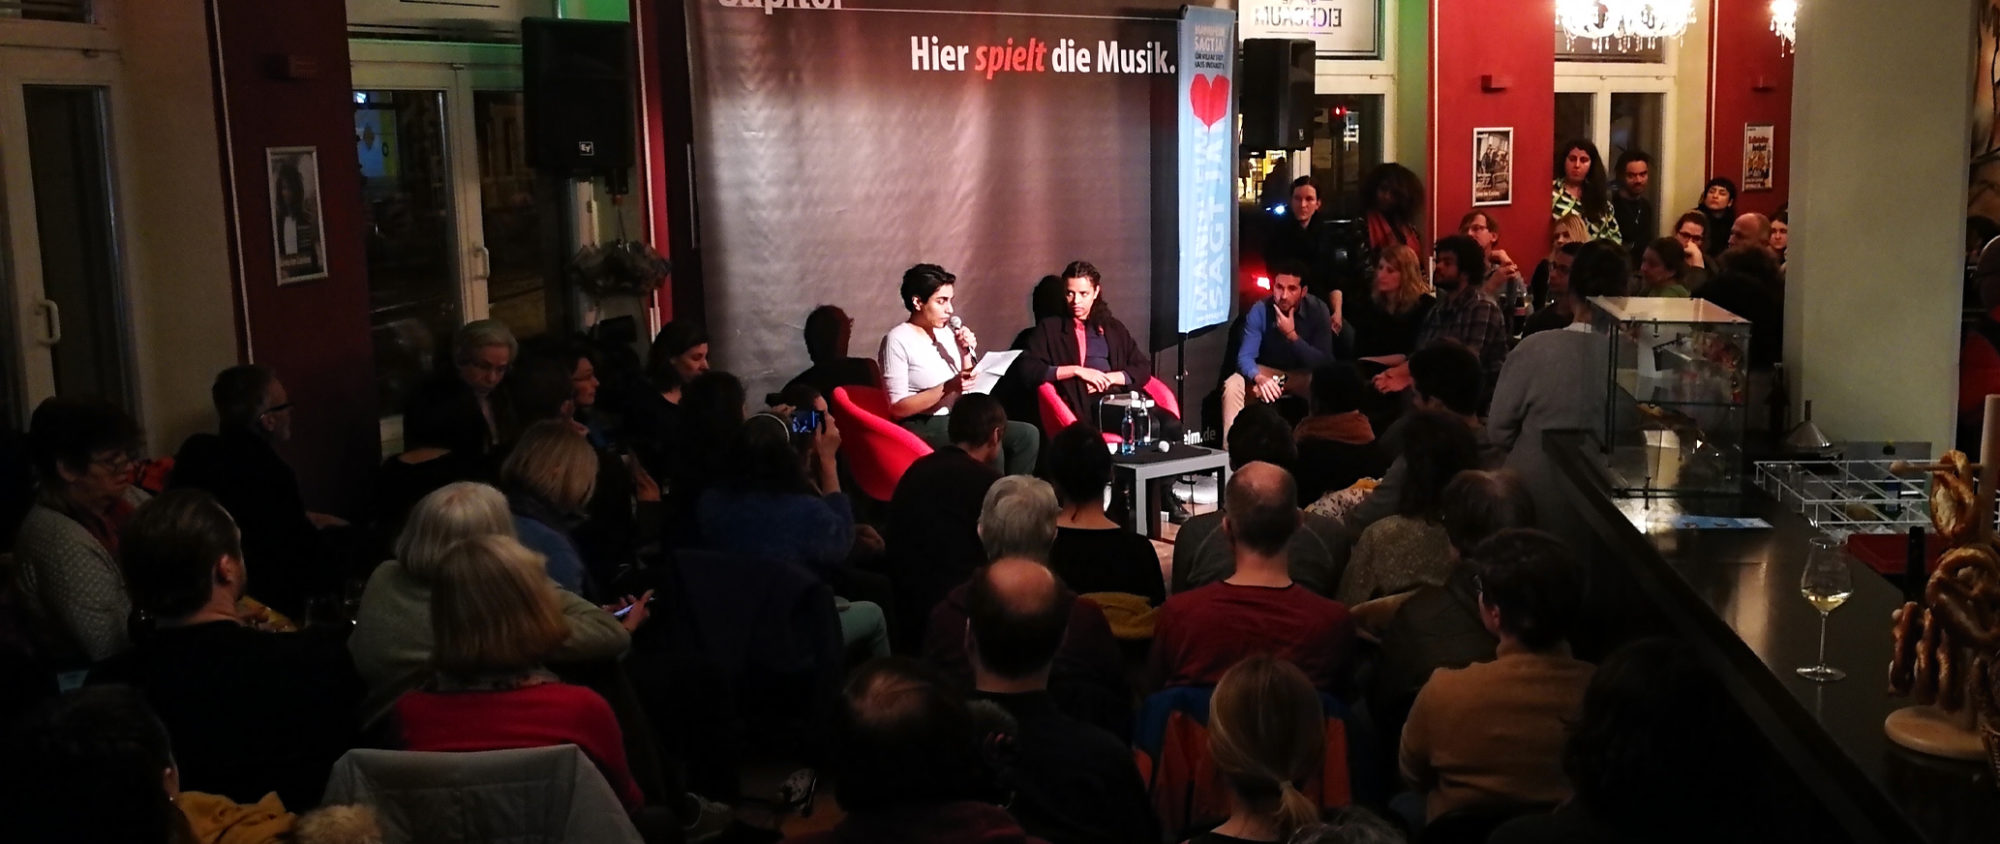 Lesung mit Alice Hasters am 05.03.2020